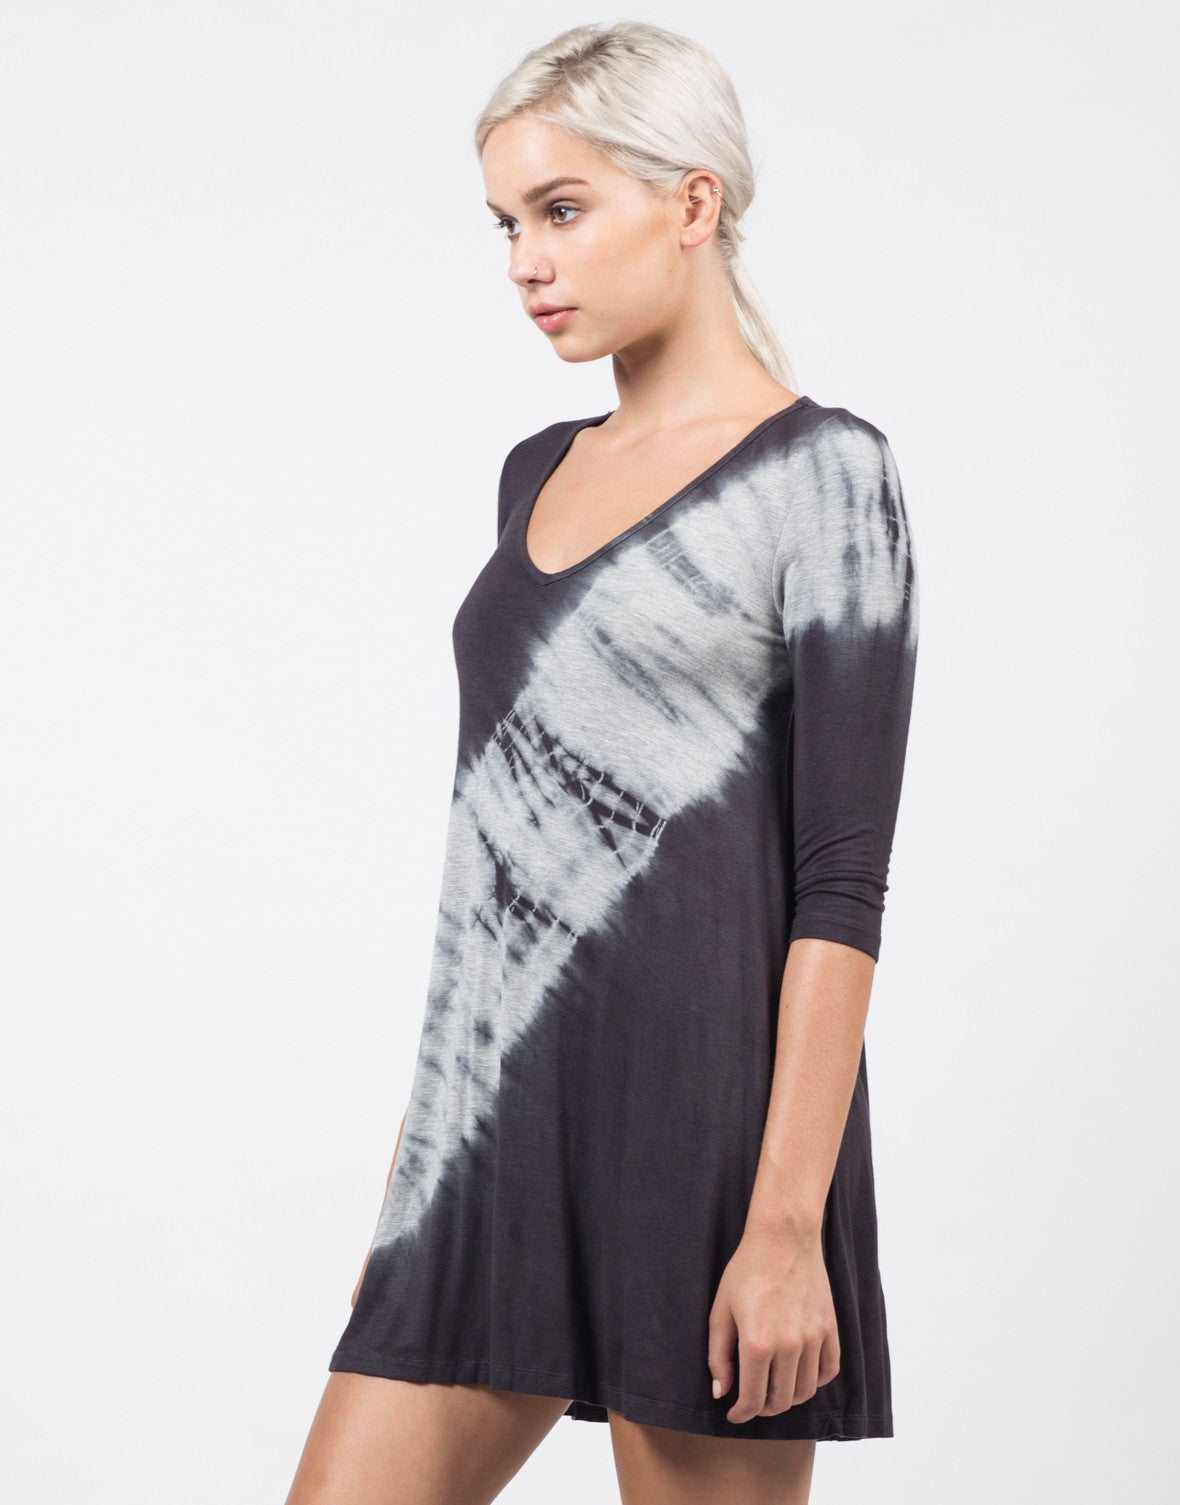 Side View of 3/4 Sleeve Flowy Tie Dye Dress